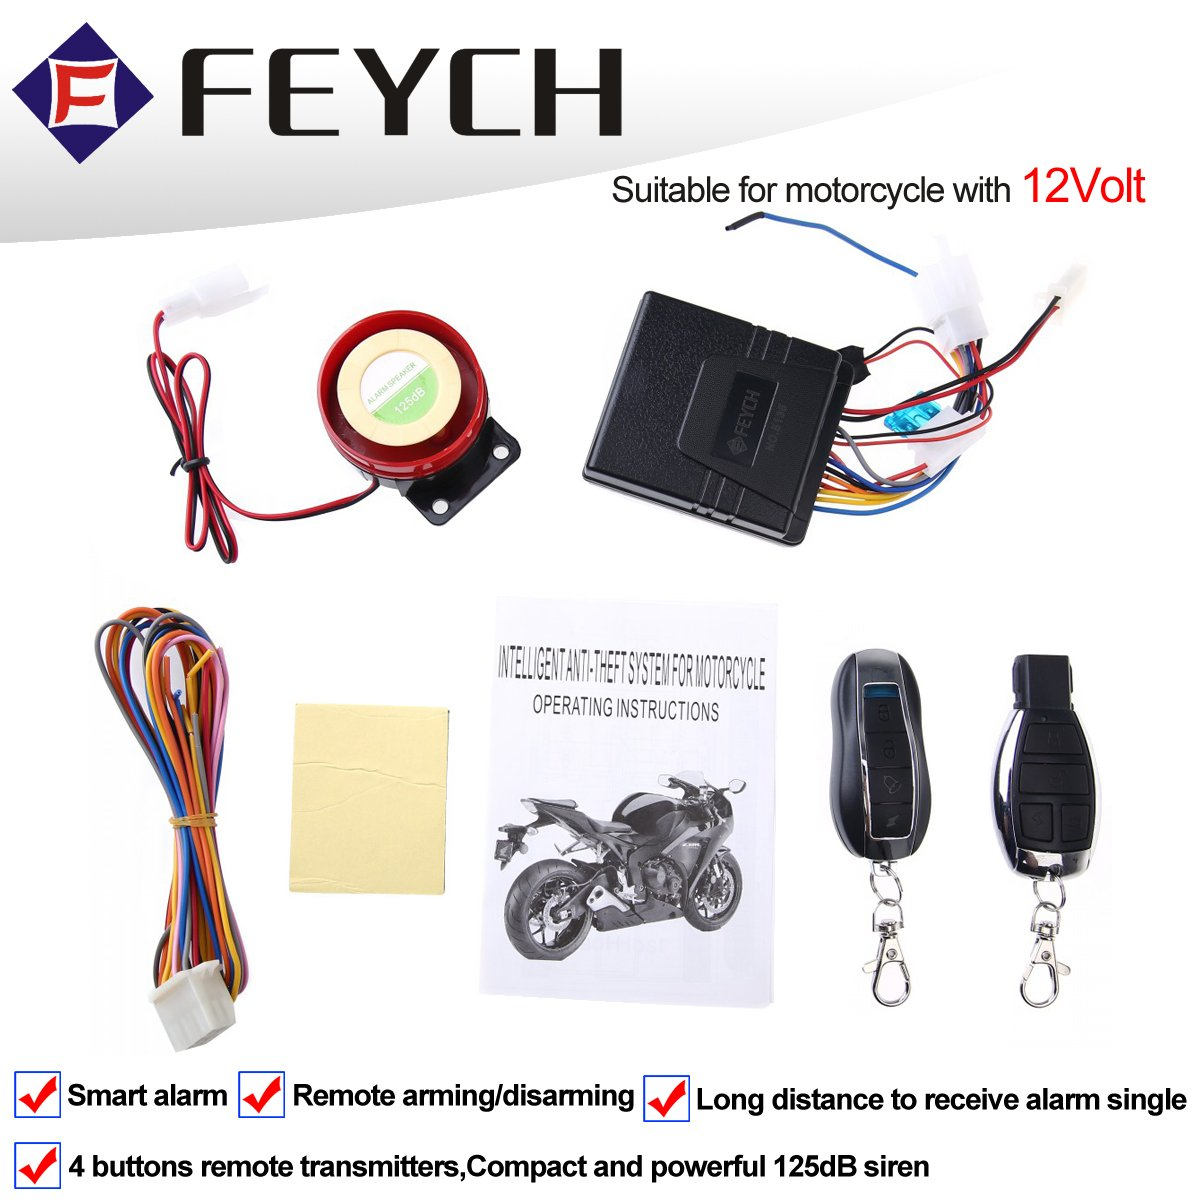 Non Intrusive No Cutting Wires Universal Fit for Motorcycle Scooter Quad Bike Motorcycle Compact Alarm System 12V 12 Volt with Remote Control